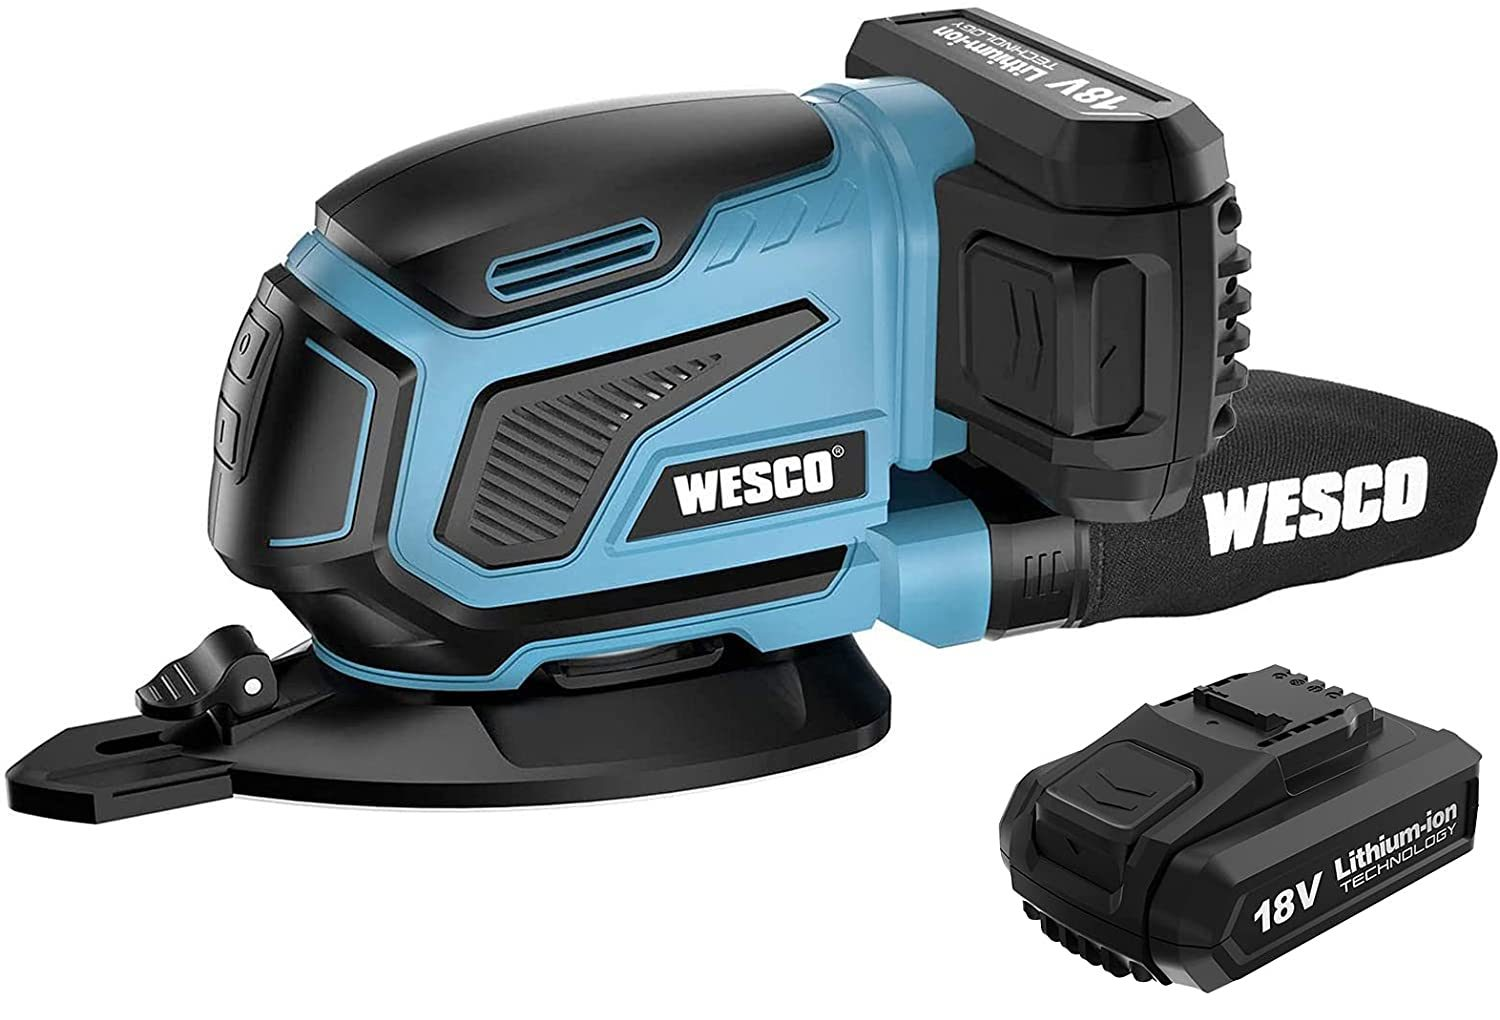 Cordless Sander, WESCO 18V 2.0Ah Mouse Detail Sander 13000RPM, 12Pcs Sandpapers, Dust Extraction with Finger Pad for Sanding in Narrow Space, Compact Multi-Tool Sander(140X140X80mm) WS2315.1